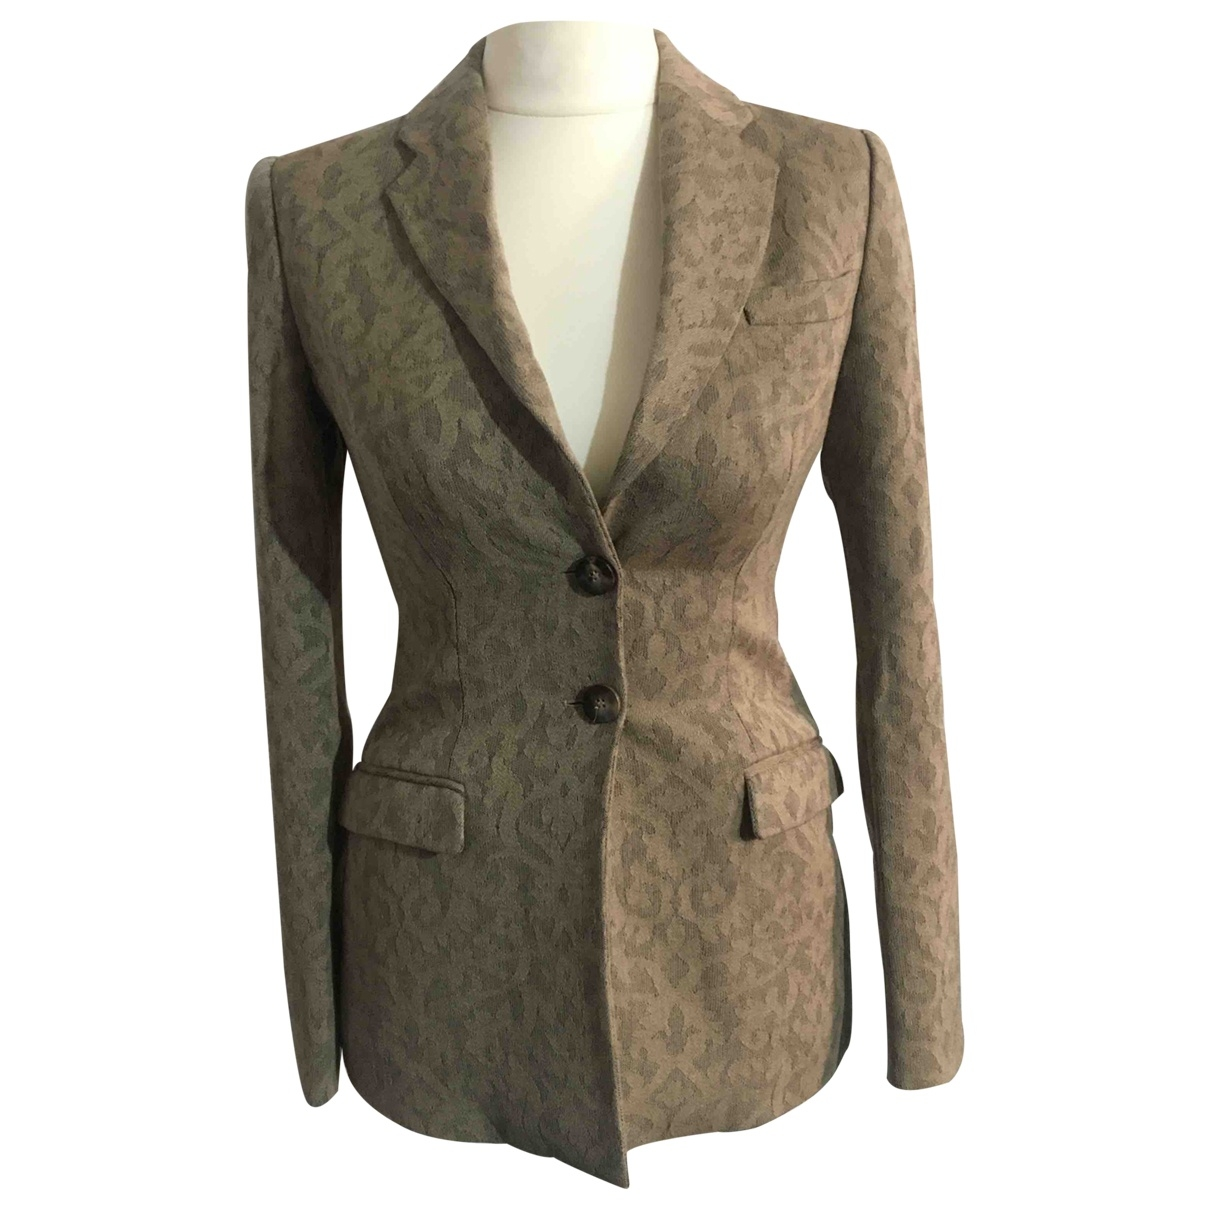 Armani Collezioni \N Anthracite Wool jacket for Women 38 FR